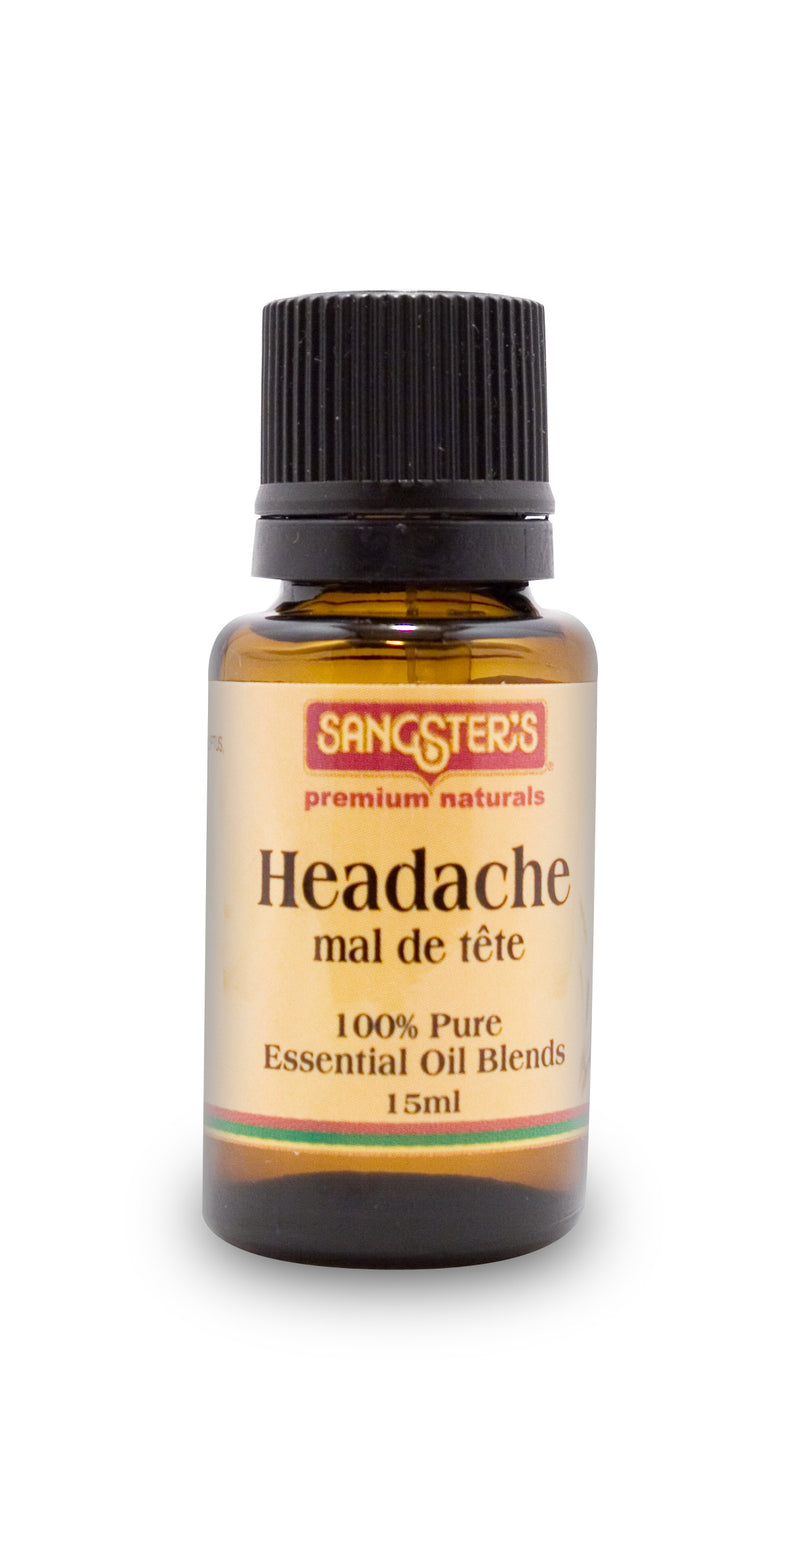 Sangster's Headache 100% Pure Essential Oil 15ml